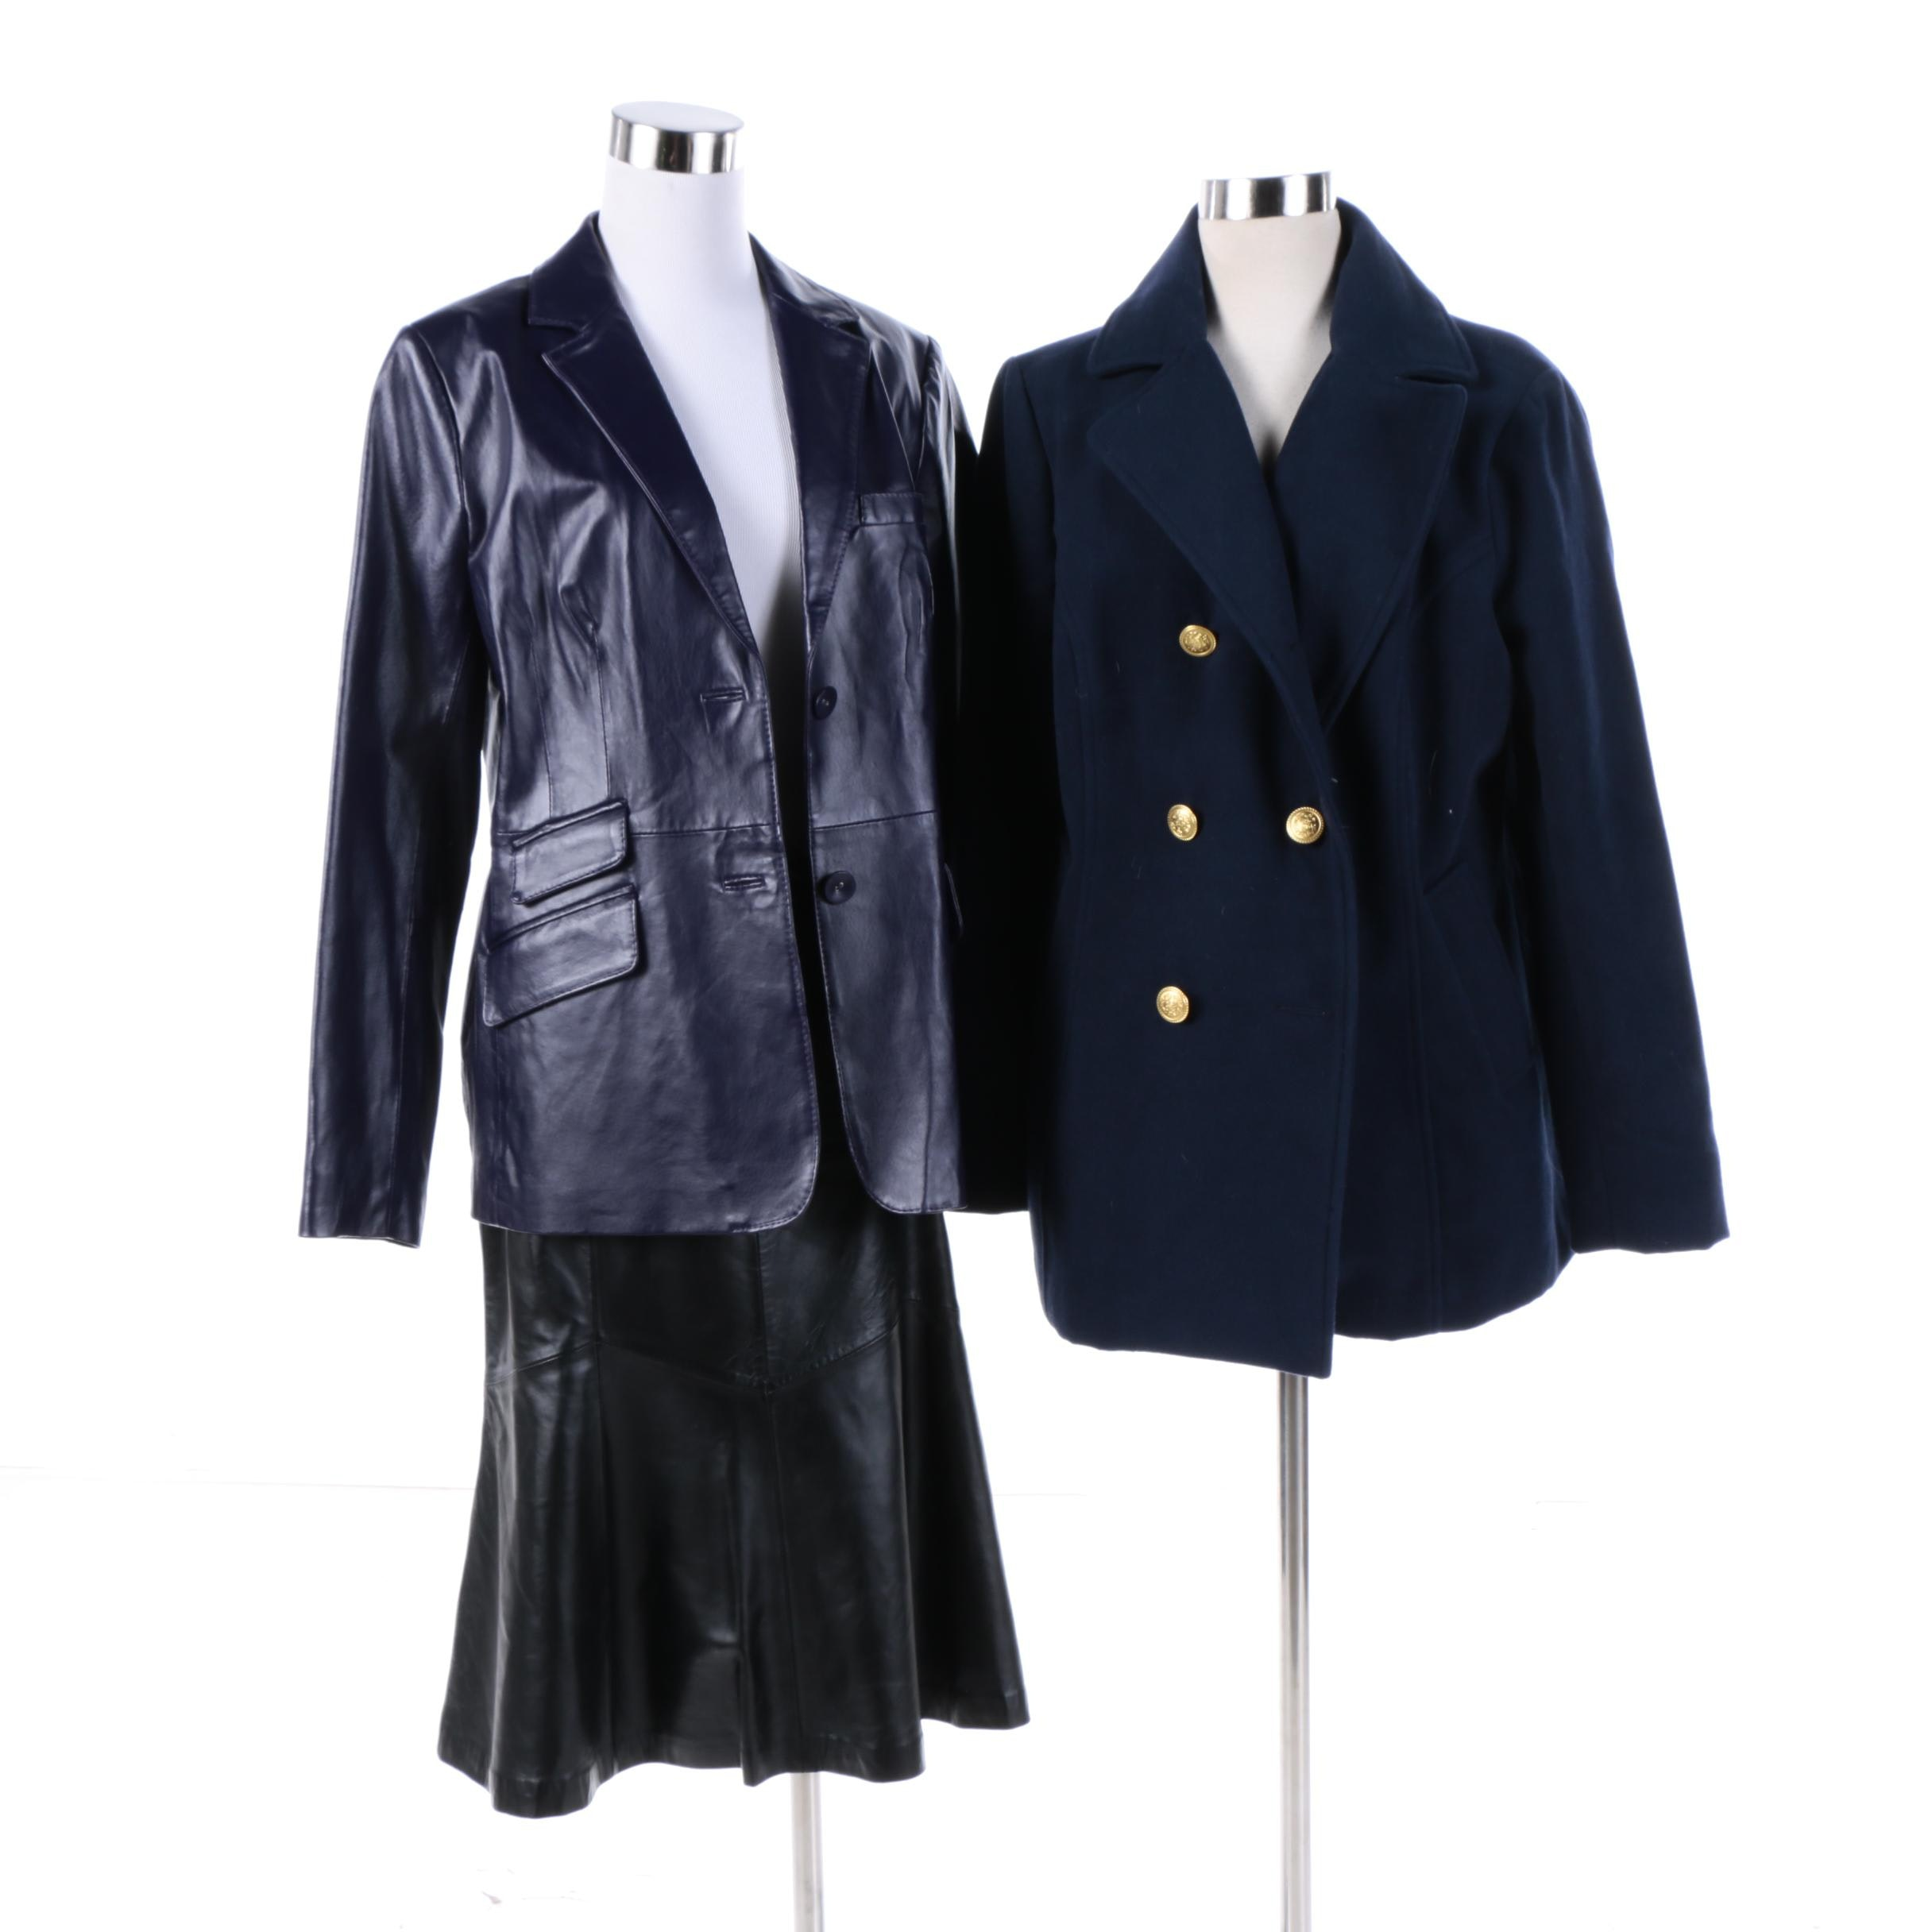 Women's Peacoat, Leather Jacket and Skirt Including Joan Rivers